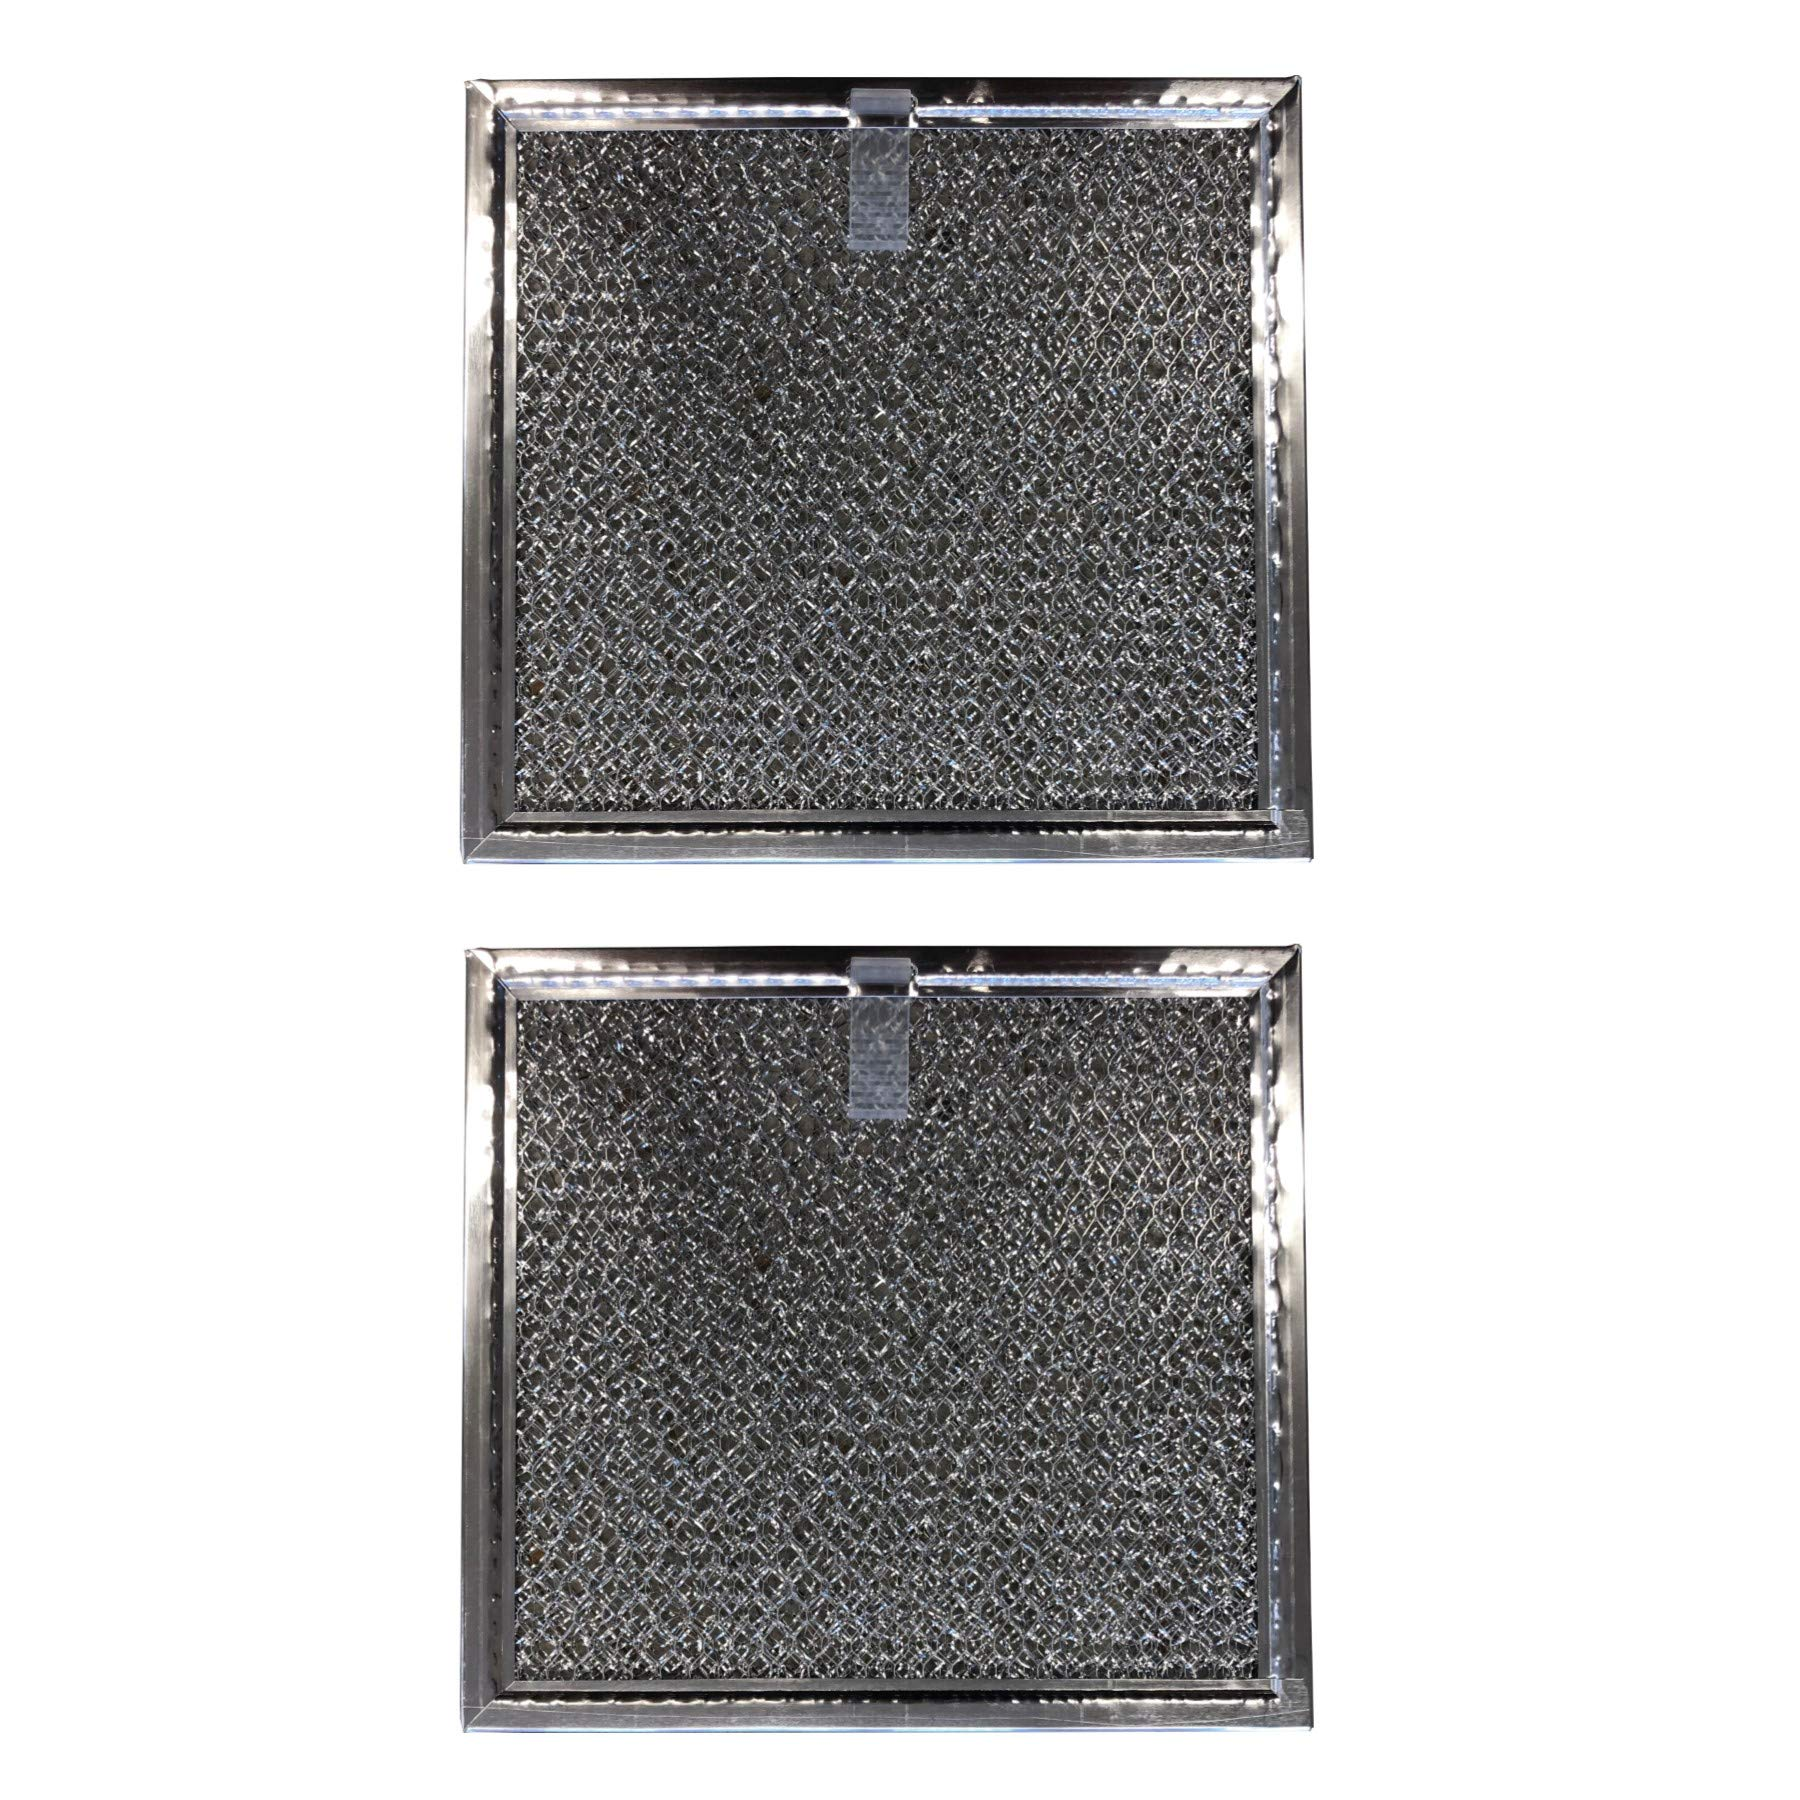 Replacement Aluminum Microwave Filters Compatible With Samsung DE63 00666A   6 3/8 X 6 7/8 X 3/32 in